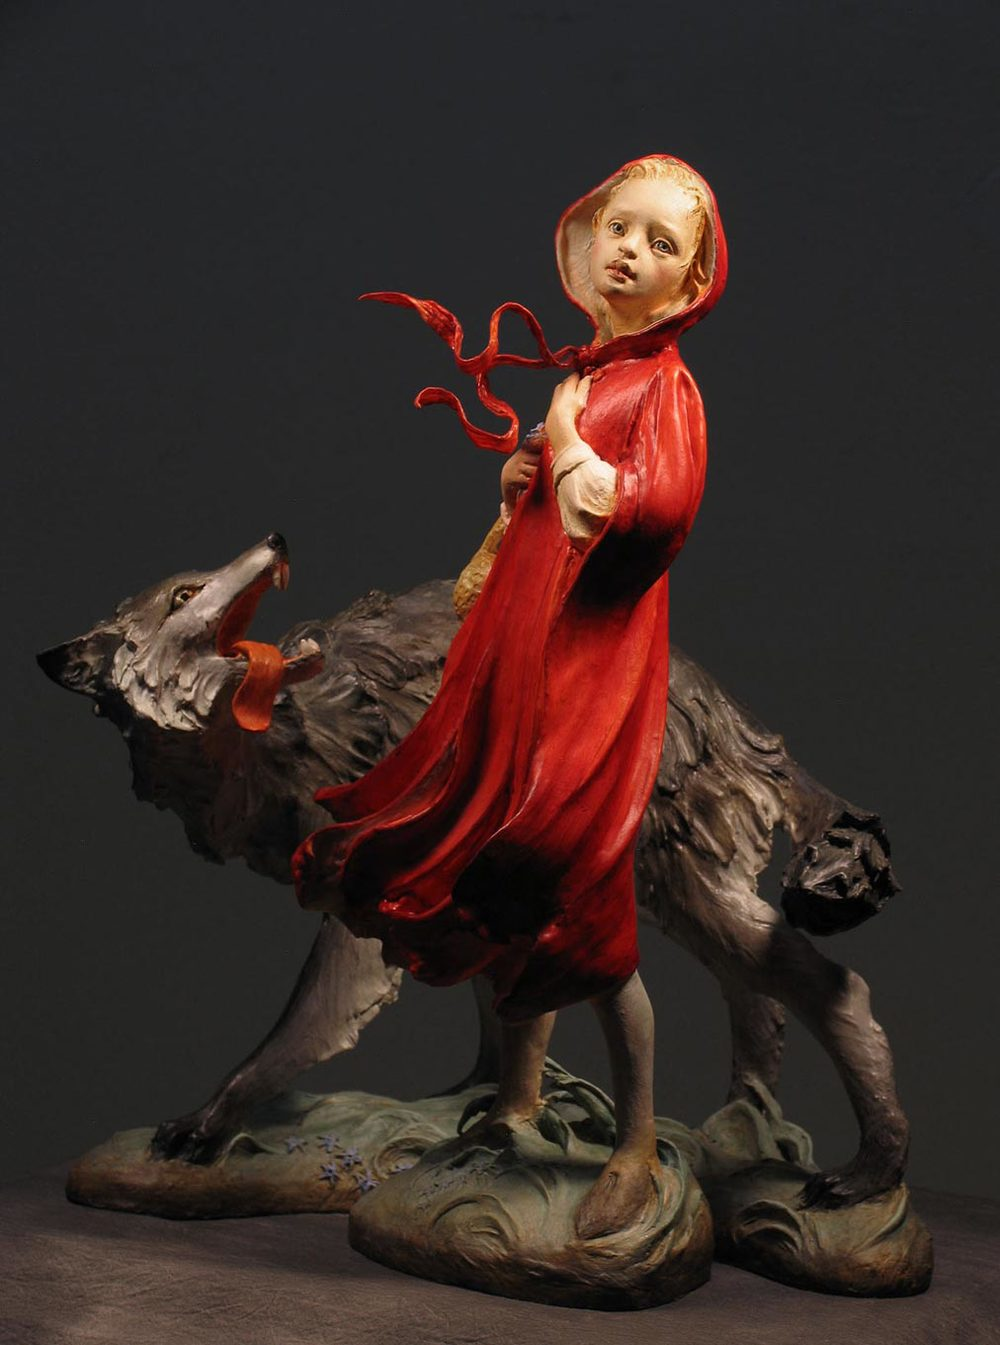 Little Red and the Wolf in air dry clay Premier, with Aves Fixit Sculpt to strengthen armatures and bases.